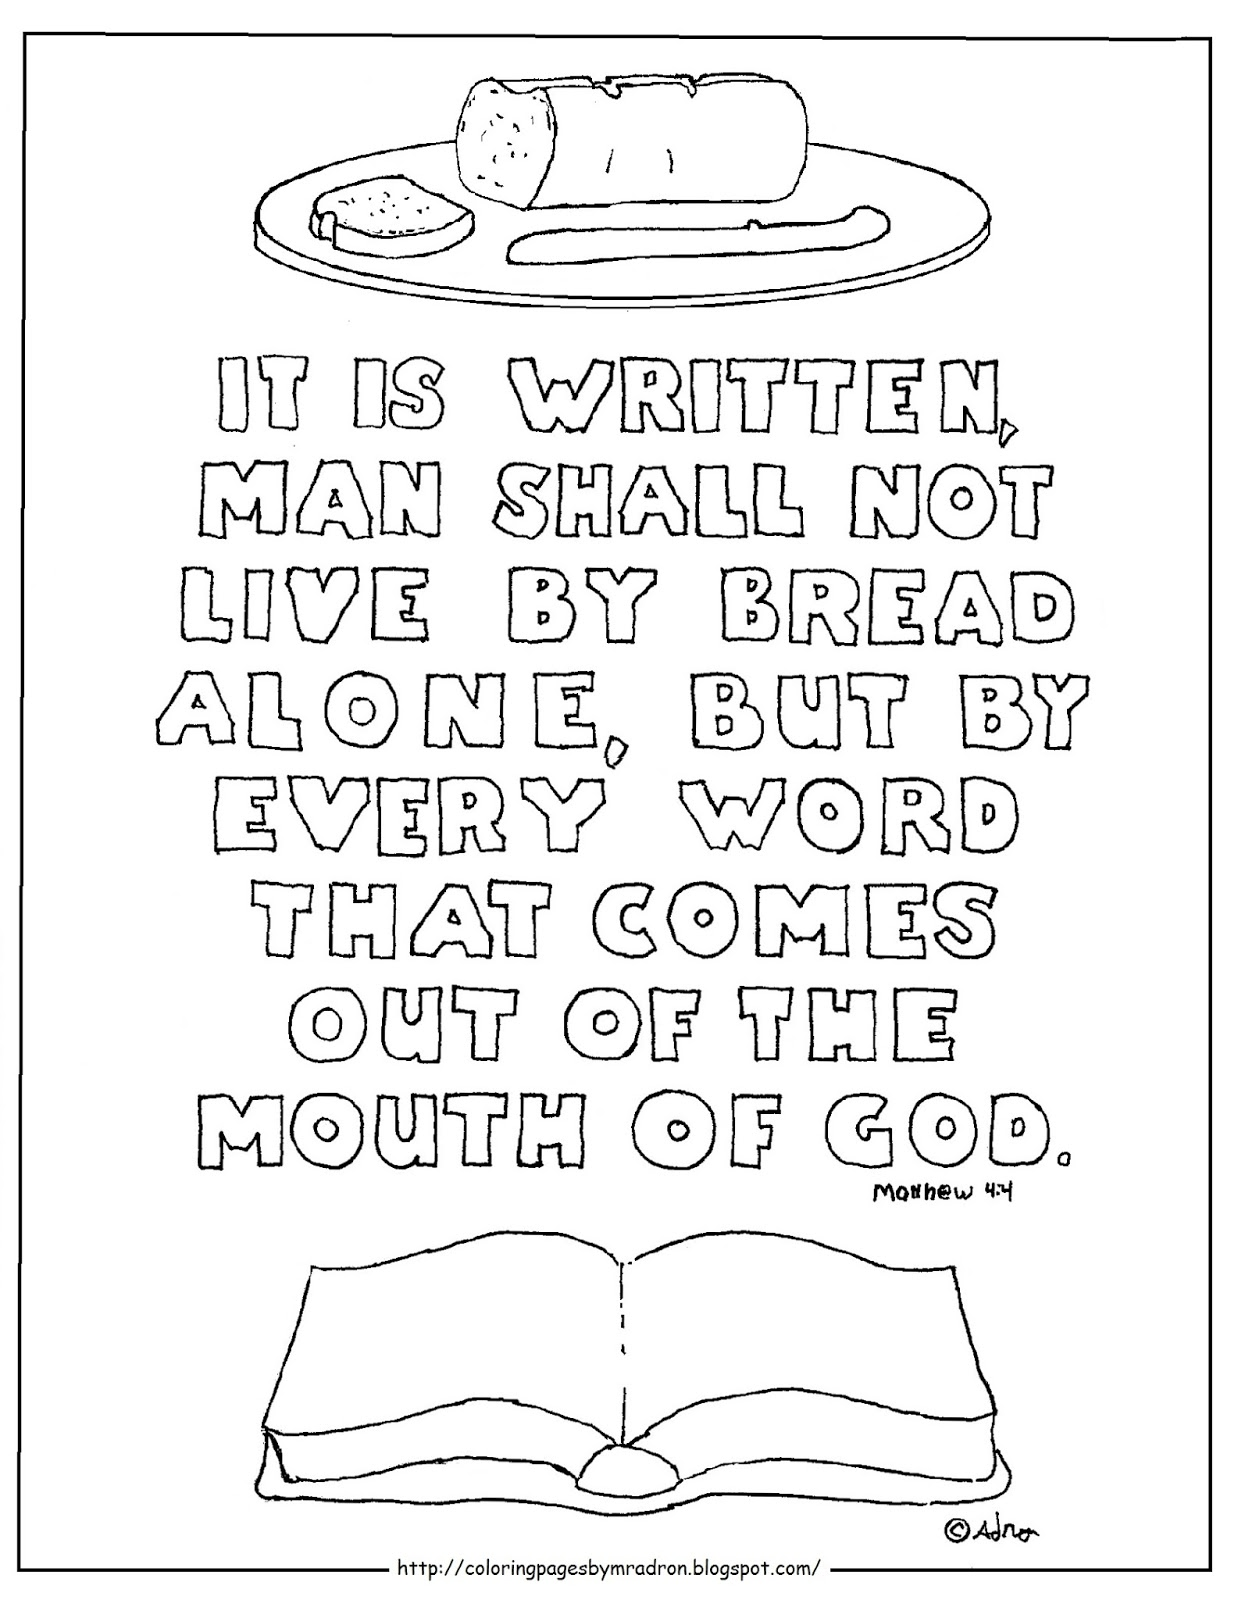 coloring pages for kids by mr adron man shall not live by bread